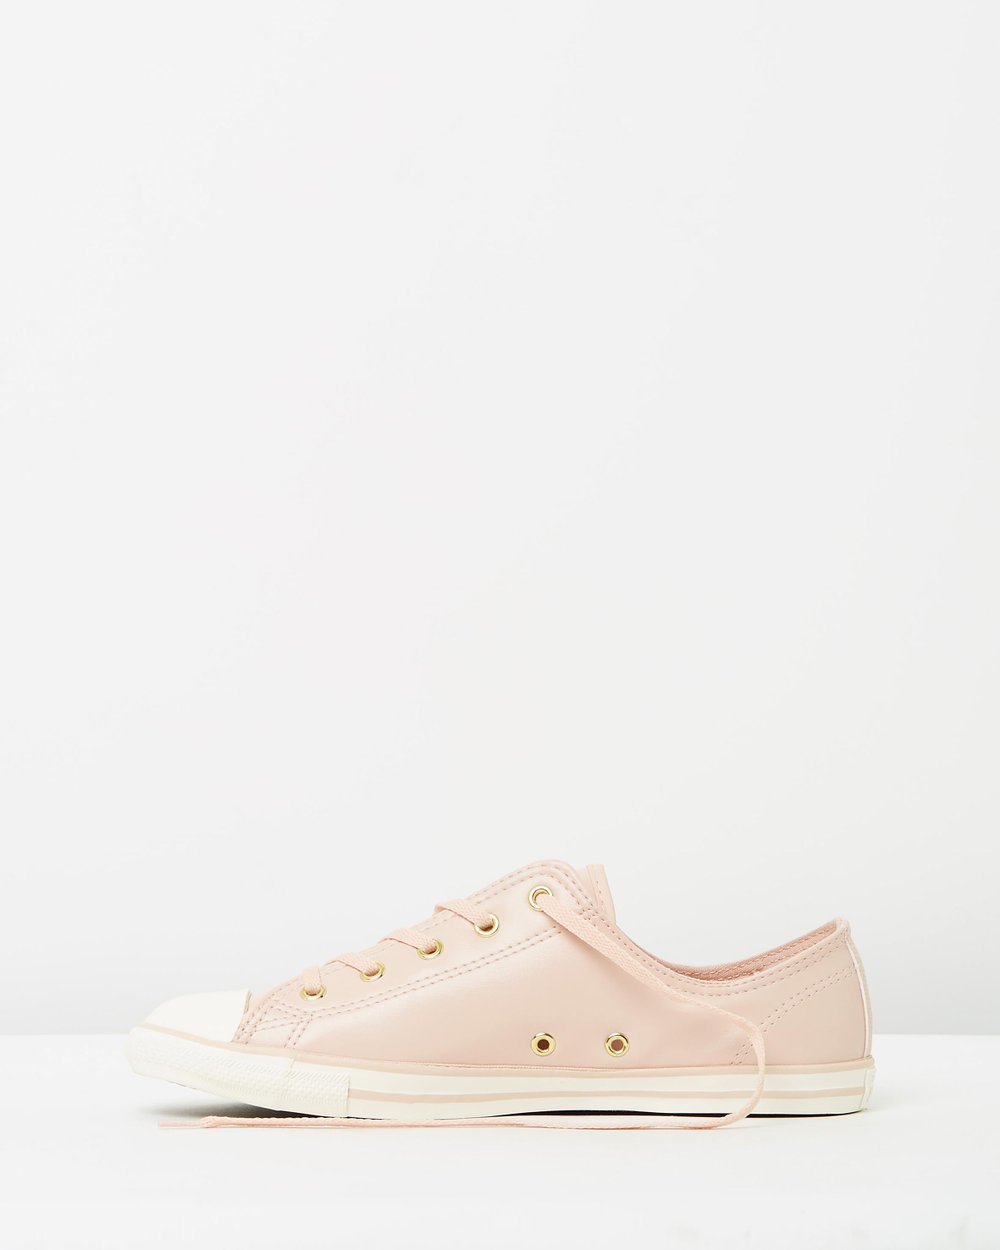 4414c93194a632 Converse Chuck Taylor Women s All Star Dainty Leather Ox by Converse Online